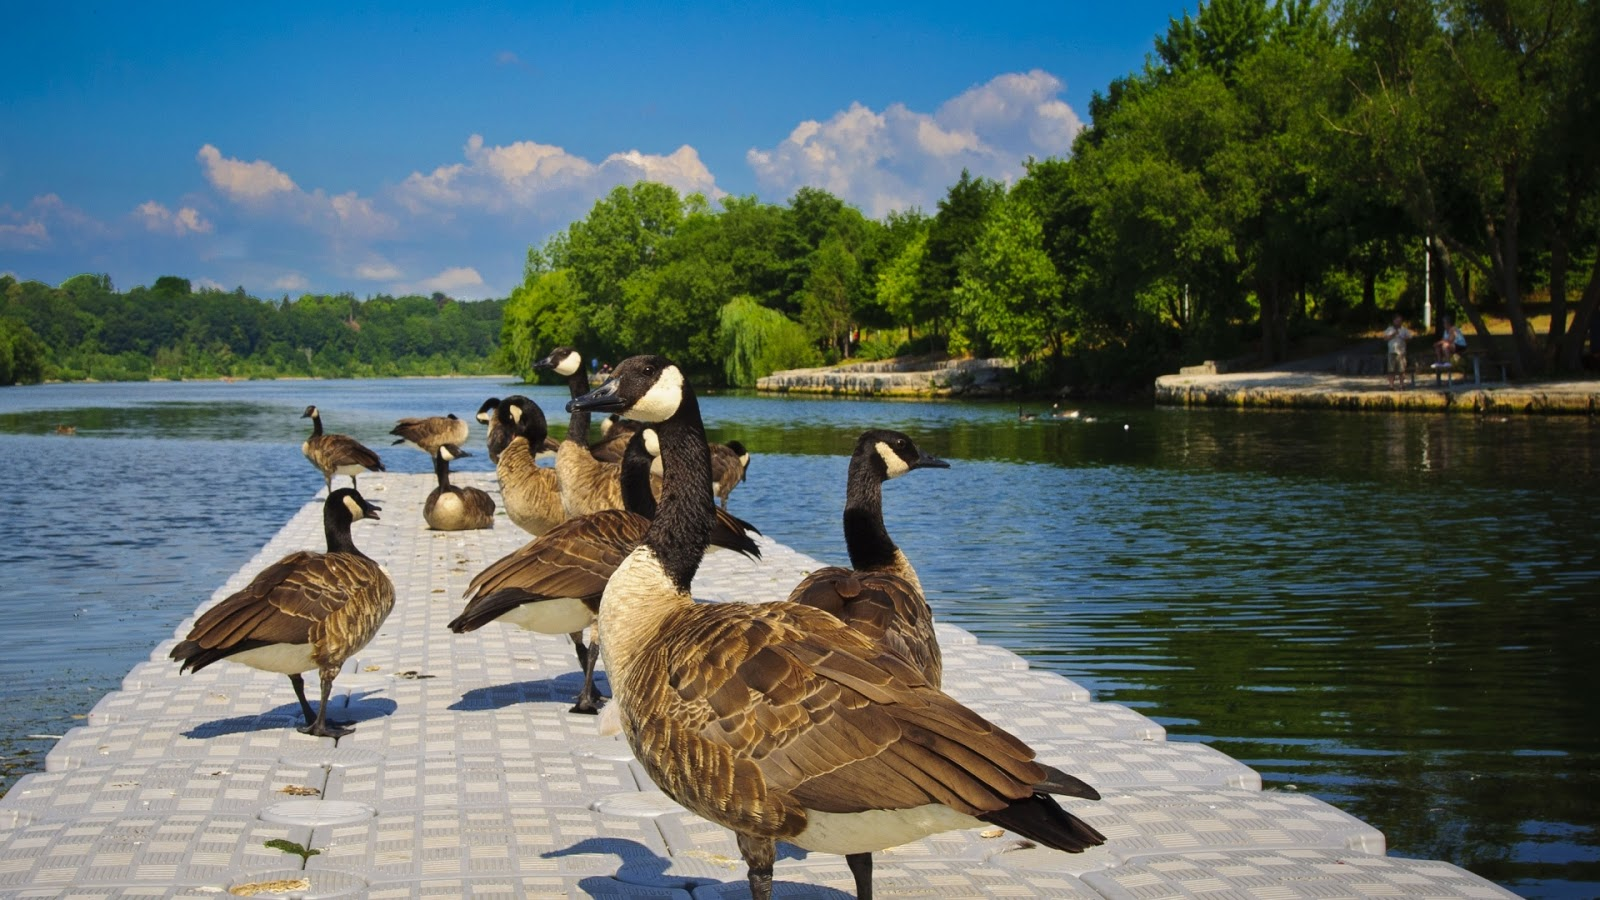 http://3.bp.blogspot.com/-udthbNbsAFU/USzu5gDKUPI/AAAAAAAAEQ0/9H7a5niQkJA/s1600/hd-wallpaper-background-with-geese-in-a-wide-river.jpg